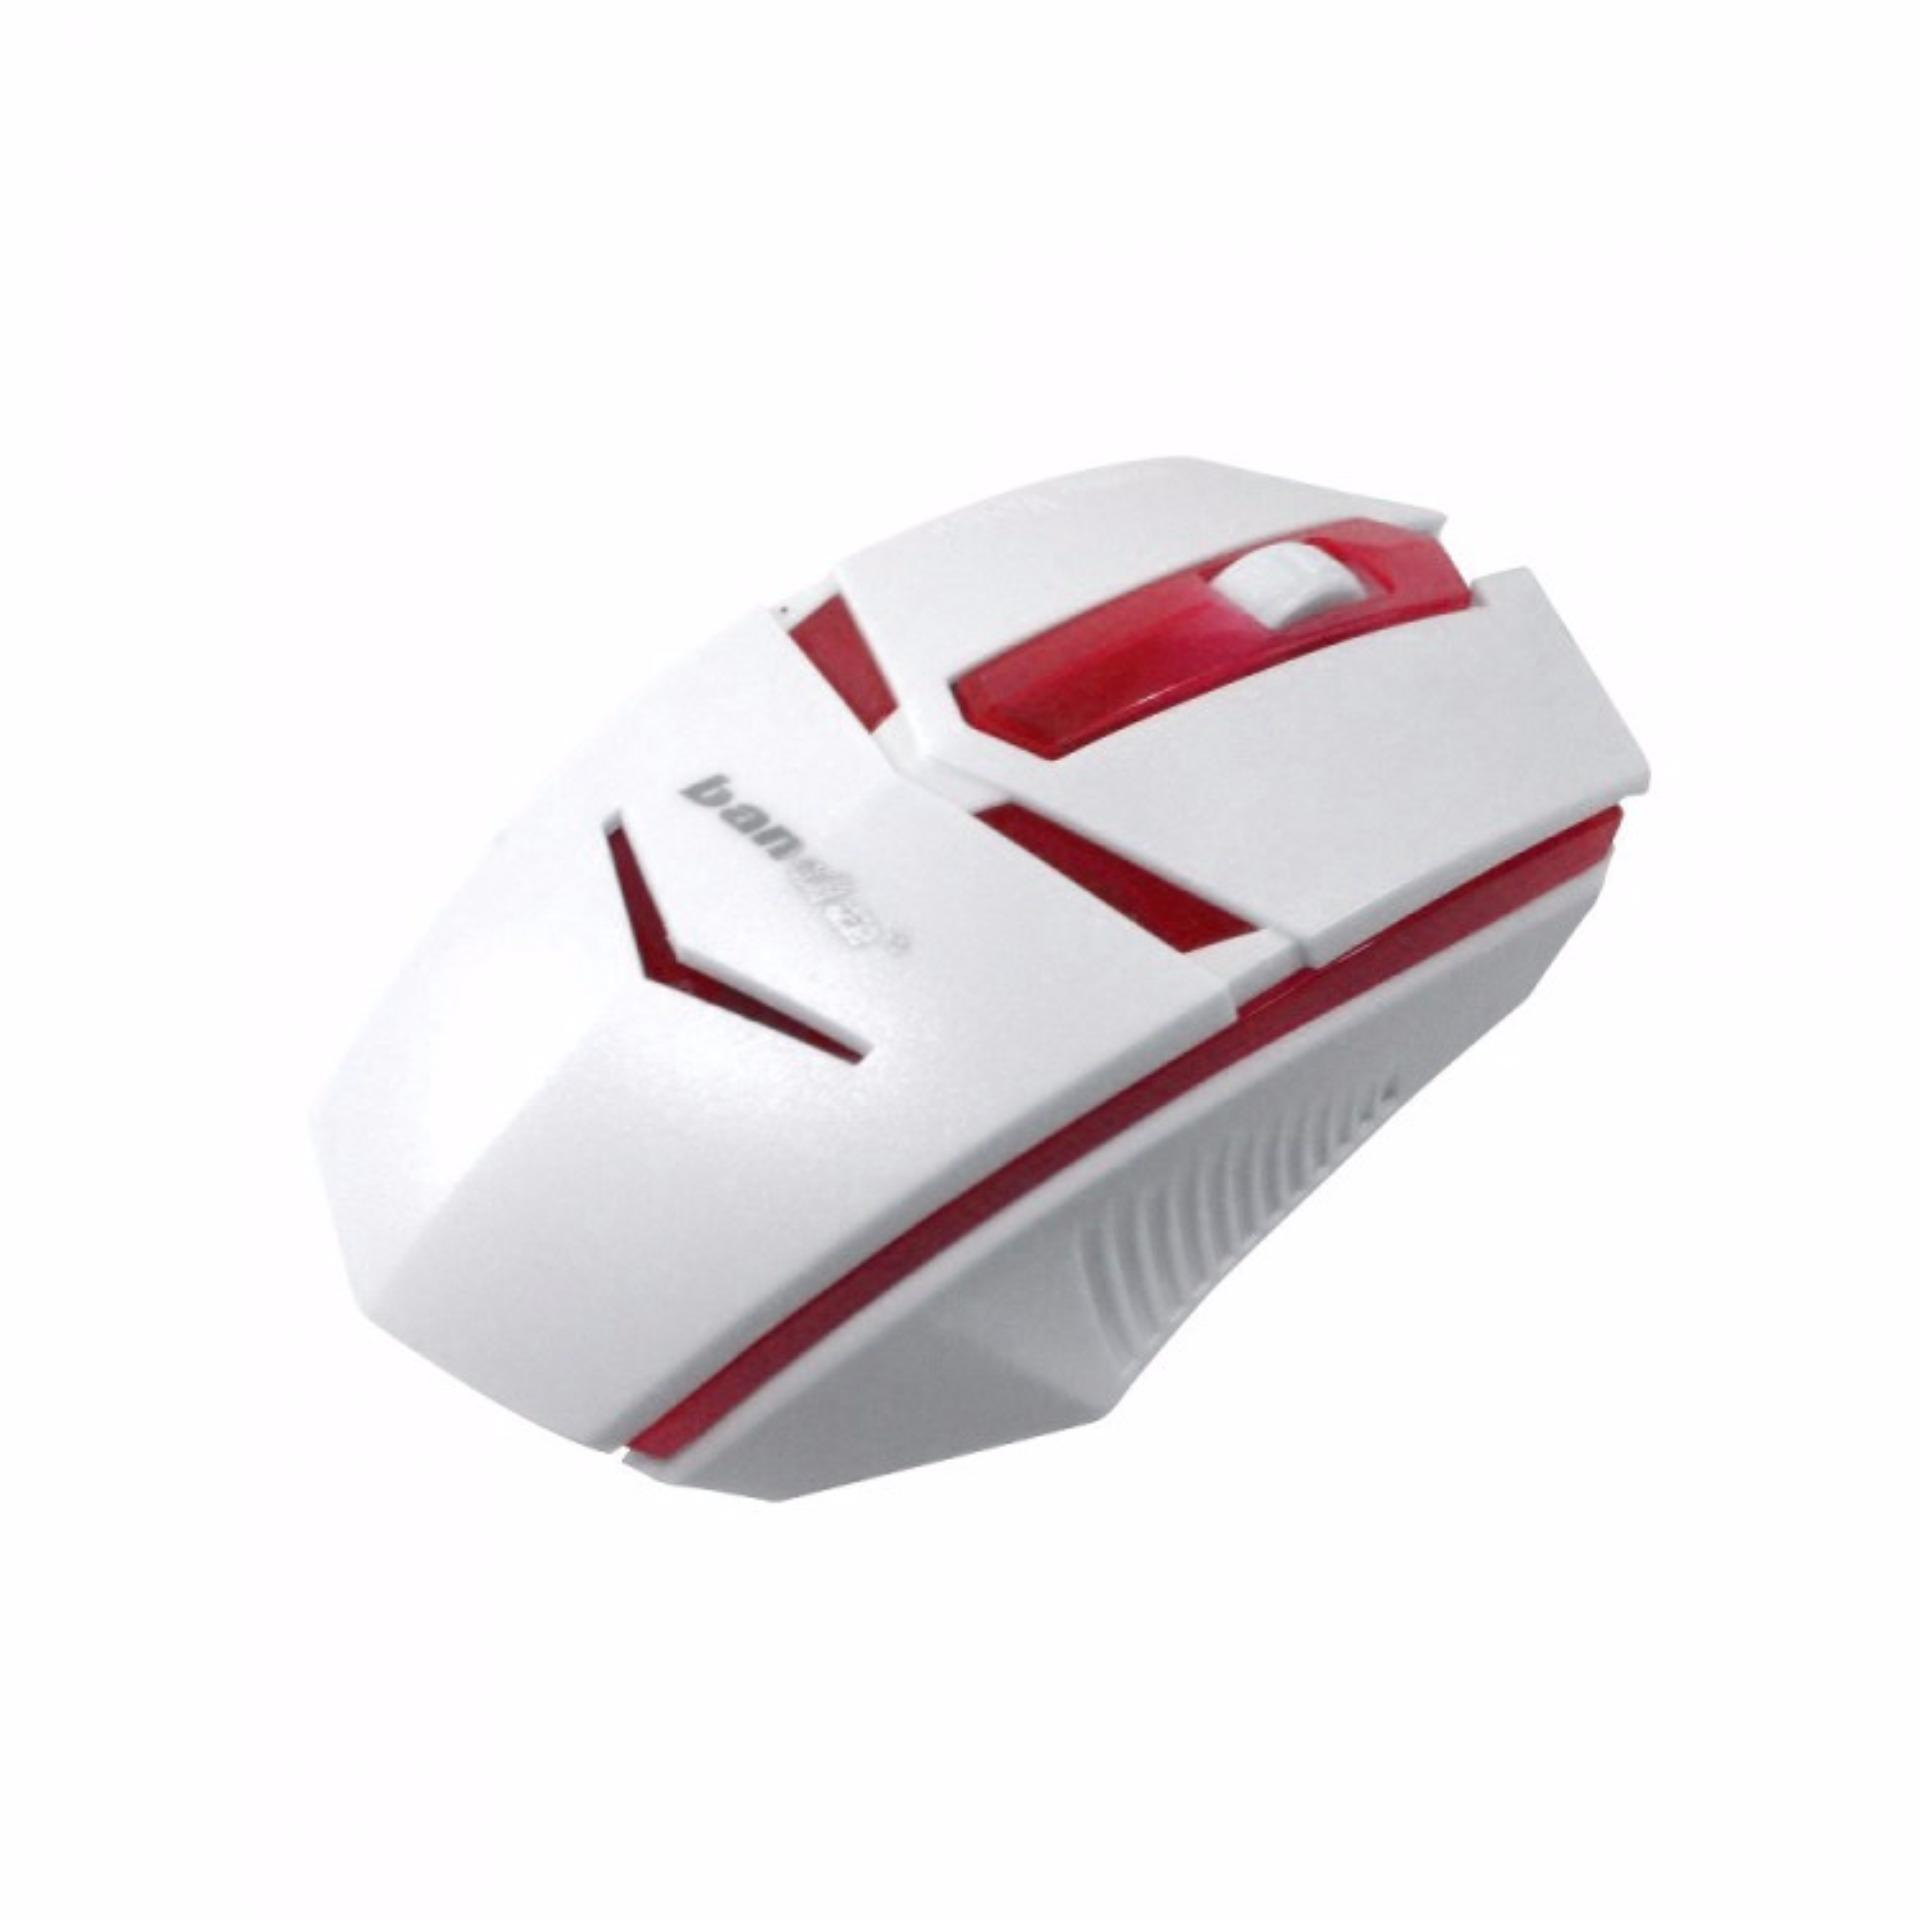 Banda Digitals Gaming Mouse Warnet B400 Hitam Referensi Daftar Standard Esmile Optical Merah Putih